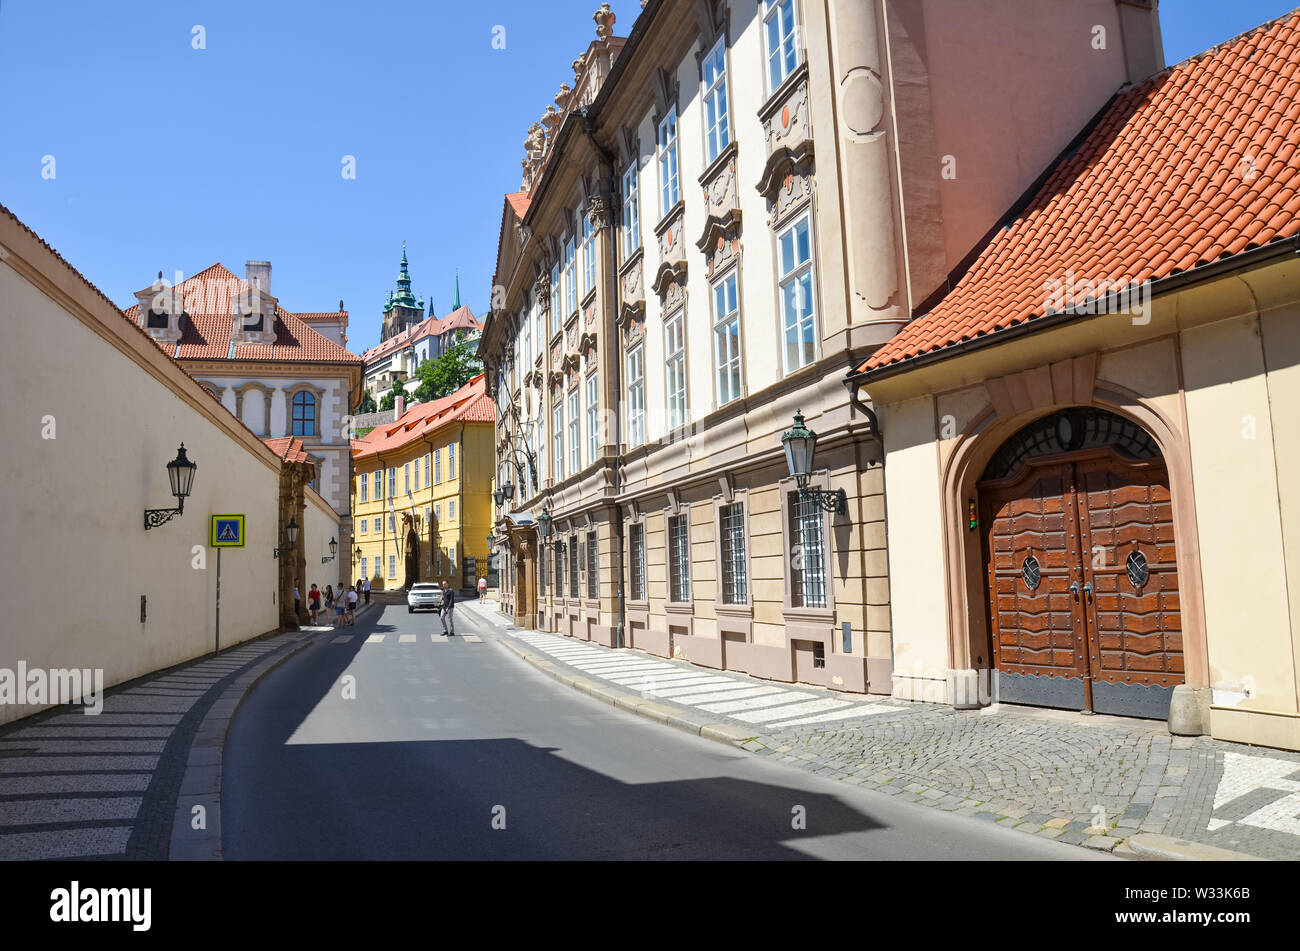 Prague, Czech Republic - June 27th 2019: Historical old town streets in Mala Strana, Lesser Town of Prague. Beautiful center of Czech capital. Prague Castle in background. Cityscape, Praha, Czechia. Stock Photo